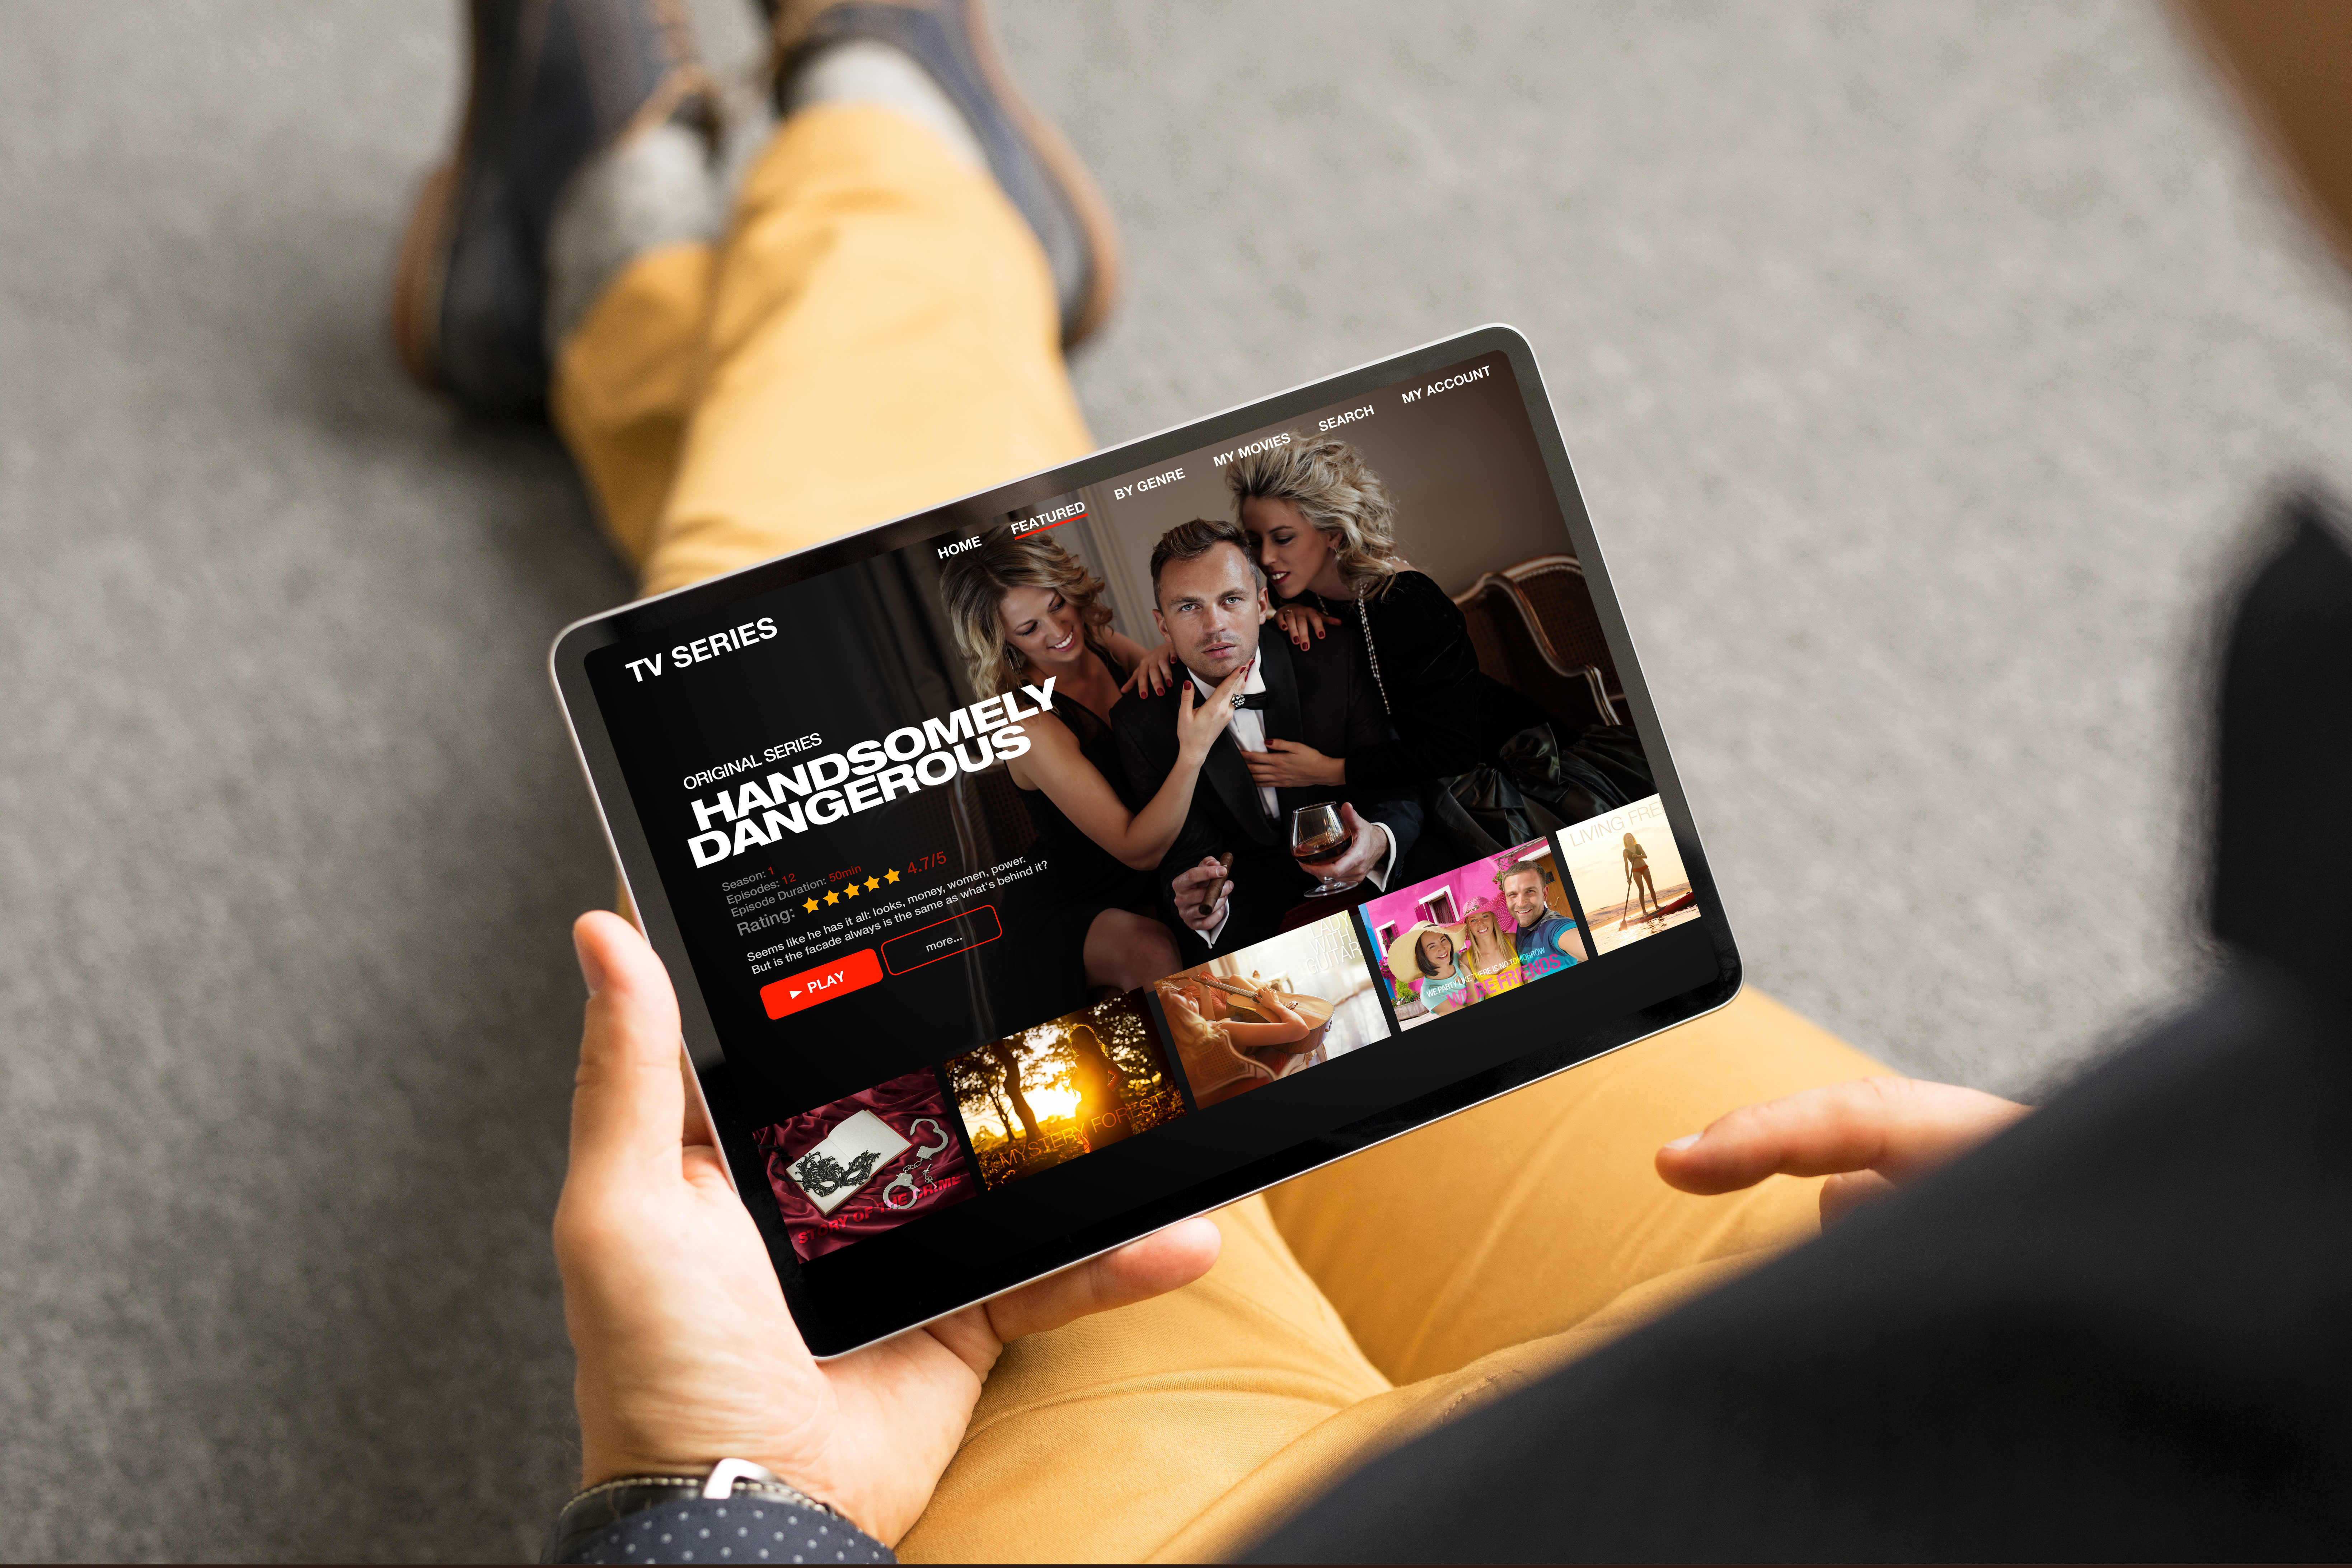 A person opens up a streaming service platform on their iPad.